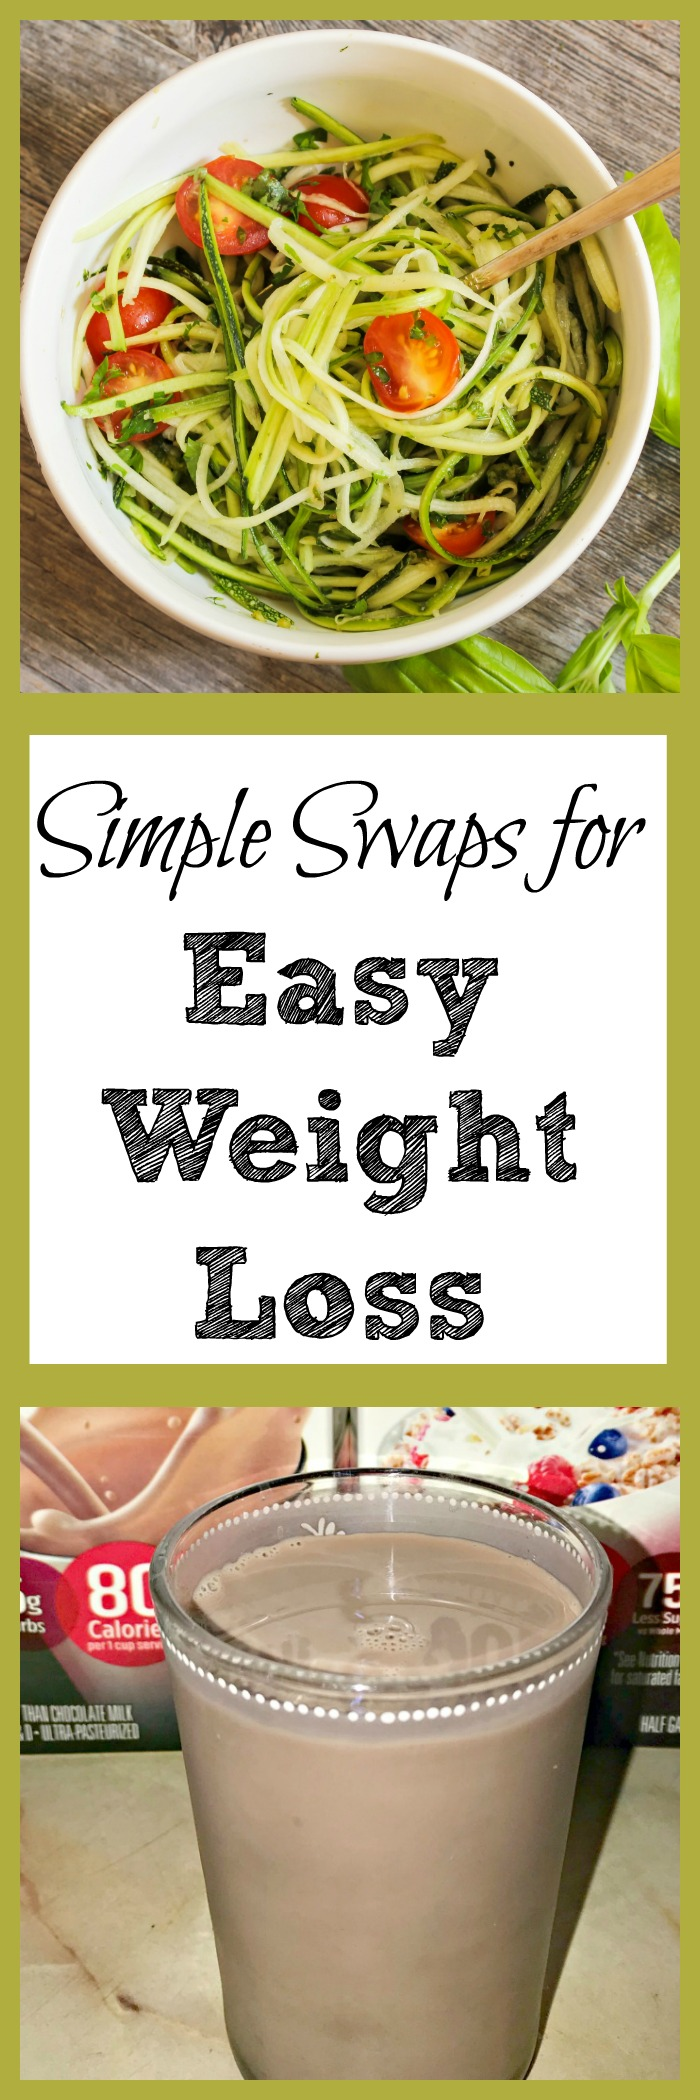 Looking for a way to get easy weight loss but don't have time to worry about calories? Try these easy weight loss swaps and tips.